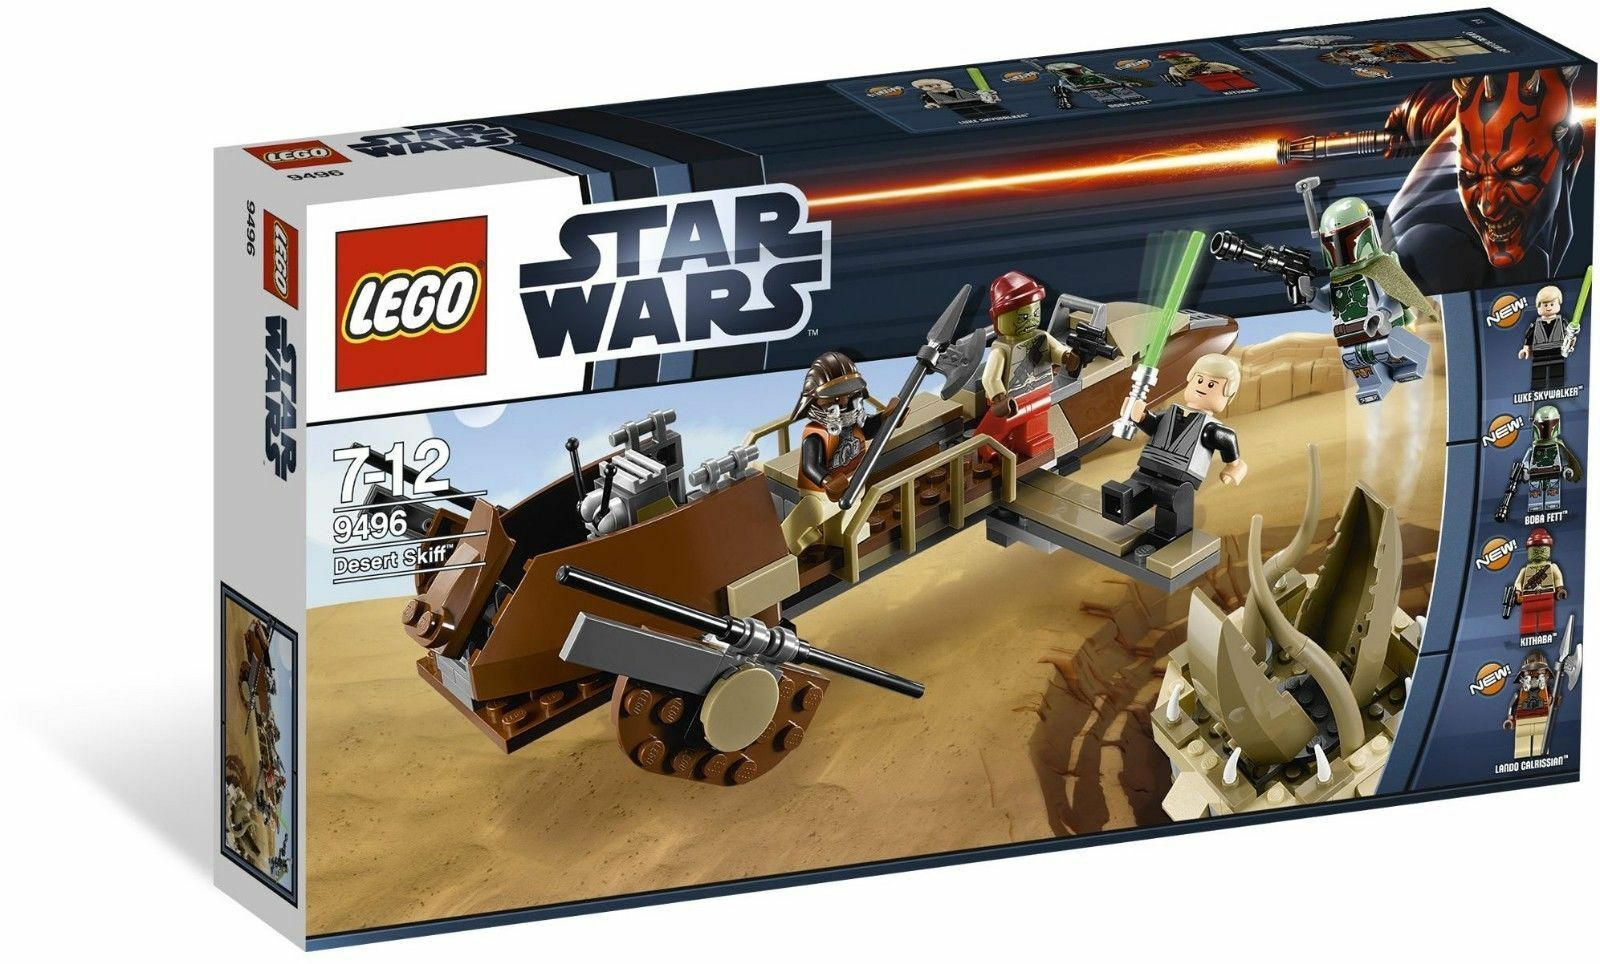 Lego Star Wars 9496 Desert Skiff, RETIRED - no minifigs but with manual 2012